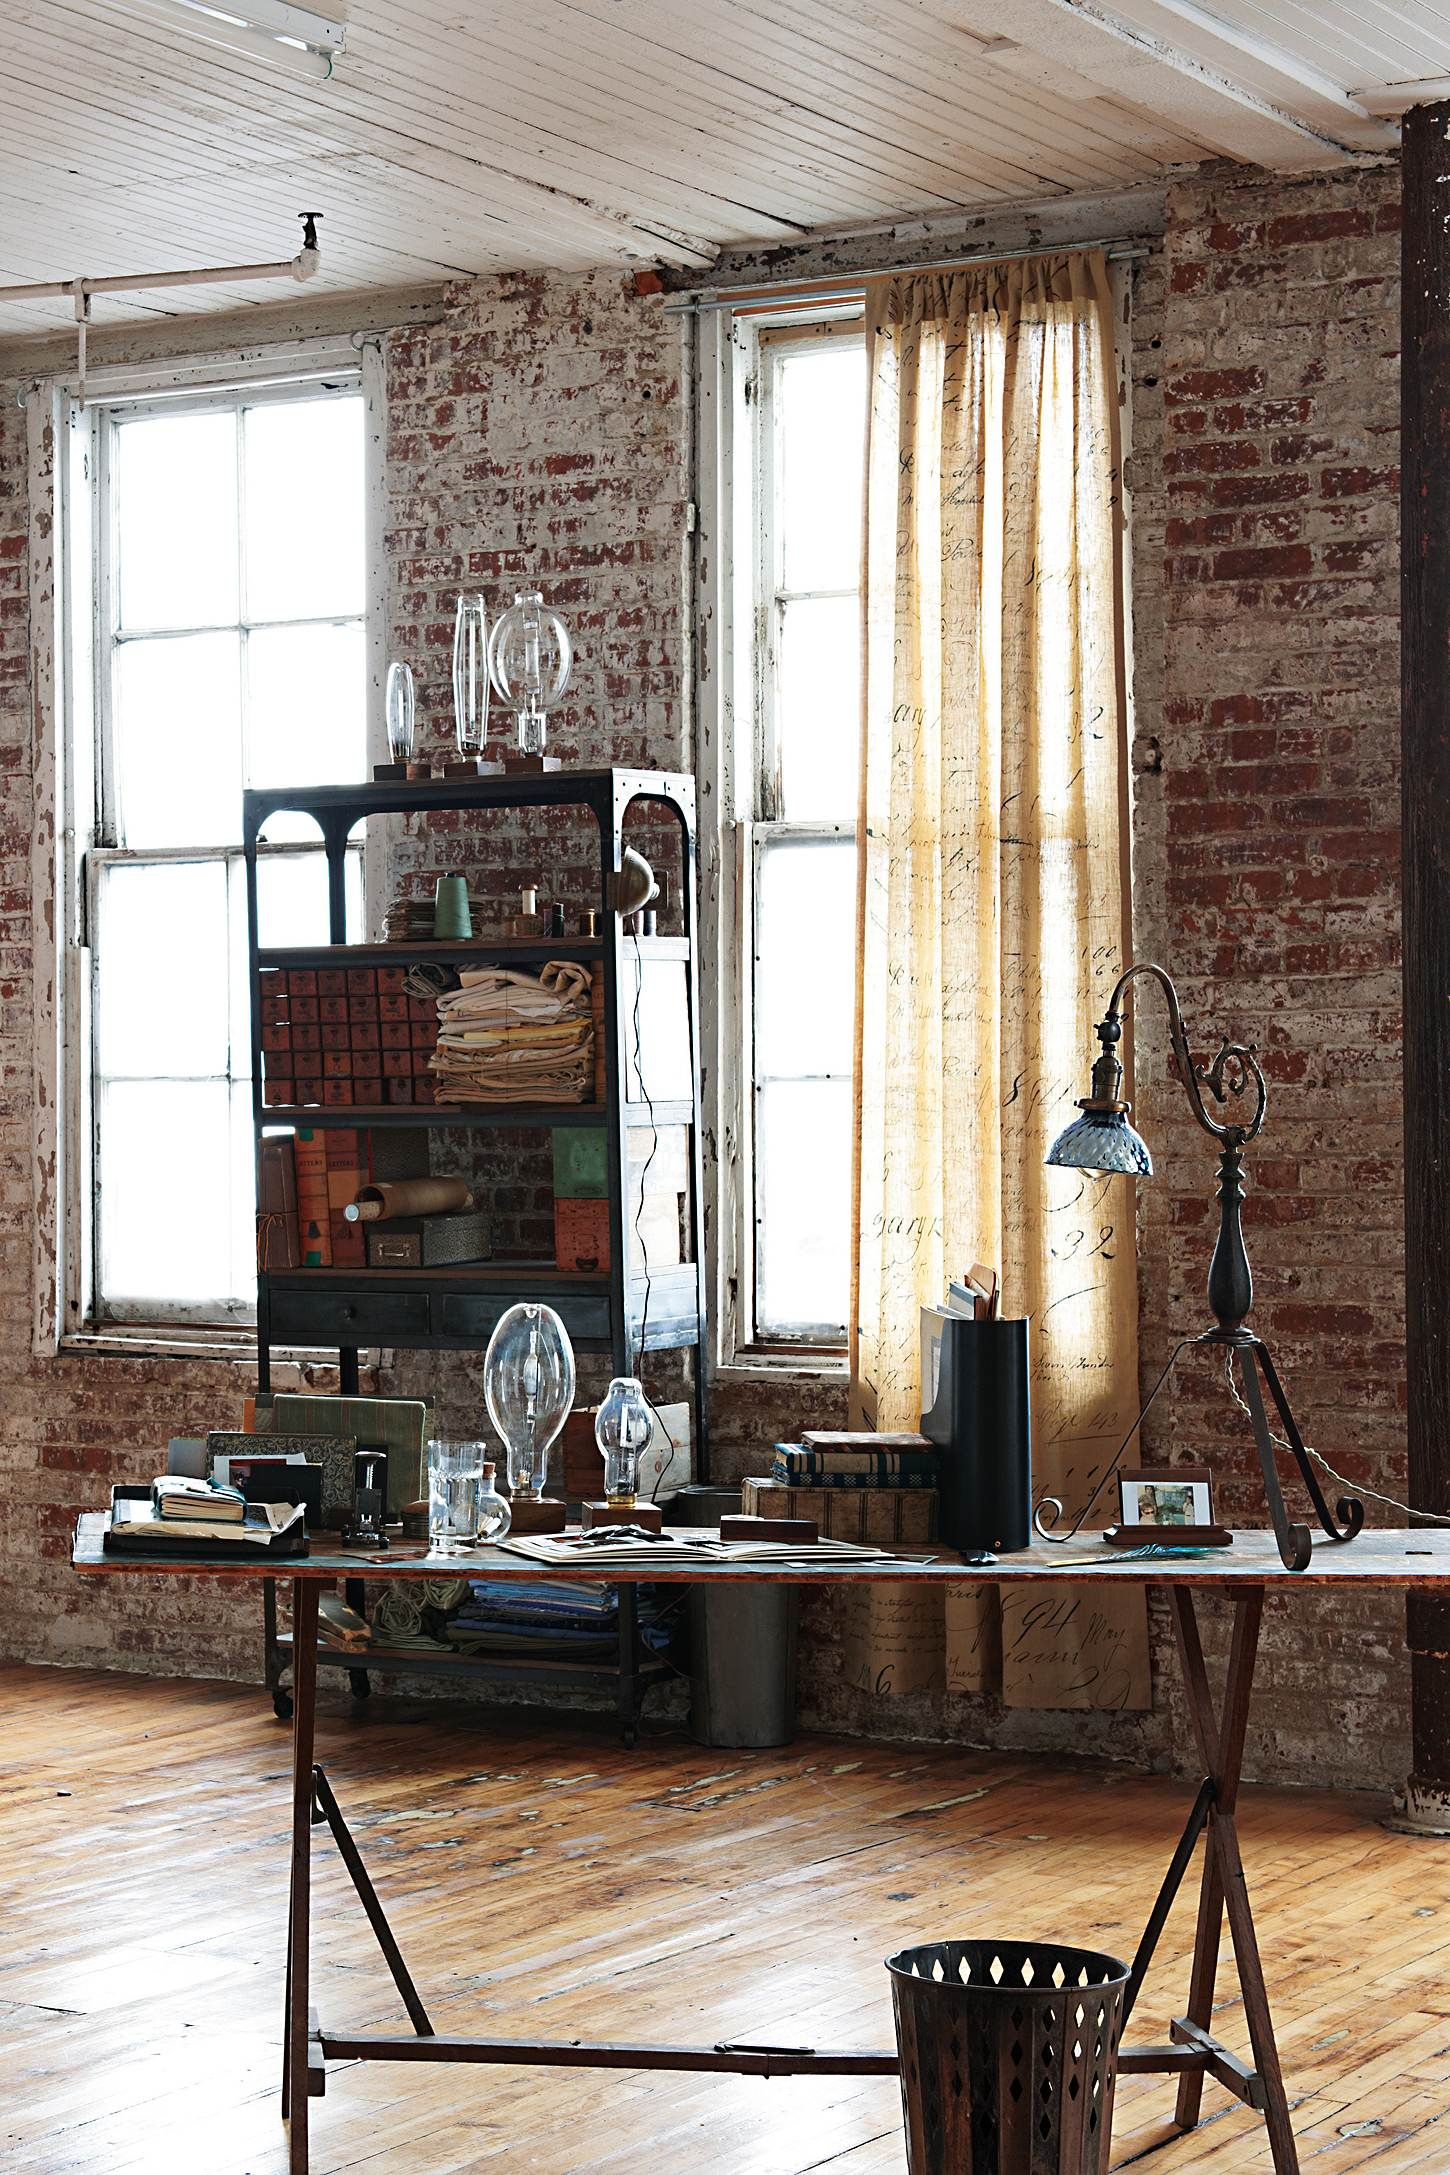 anthropologie style furniture. Another Man\u0027s Treasure Lamp Anthropologie Style Furniture C